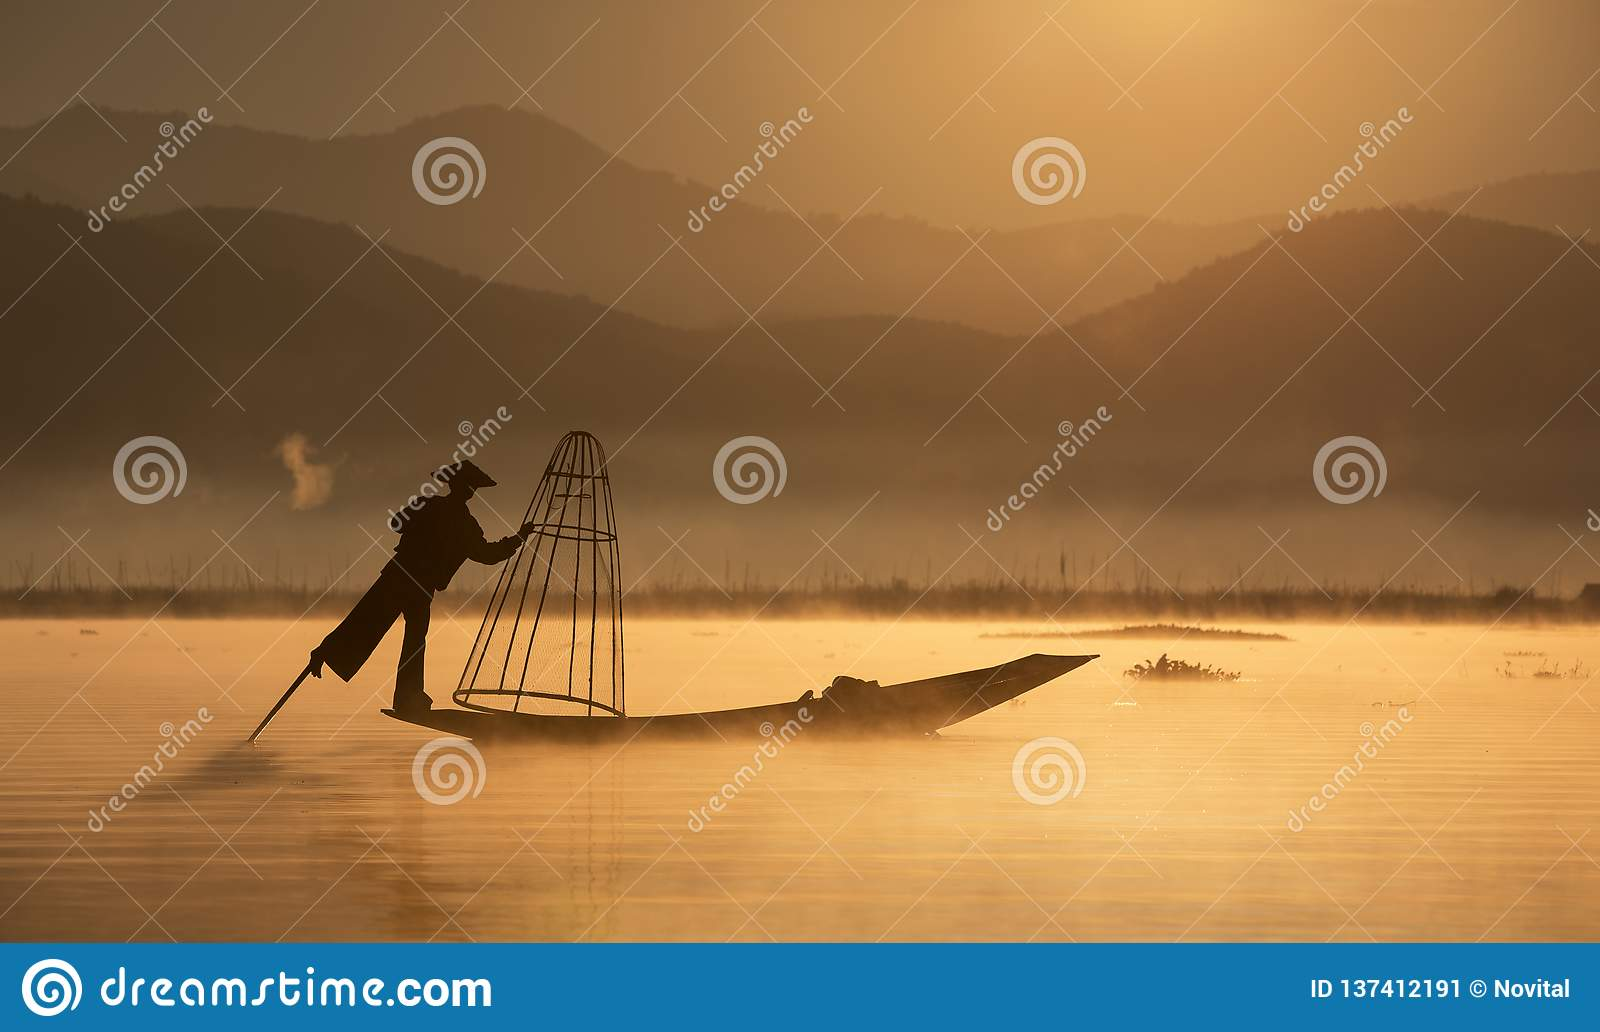 Fisherman with traditional network on the old boat at dawn to